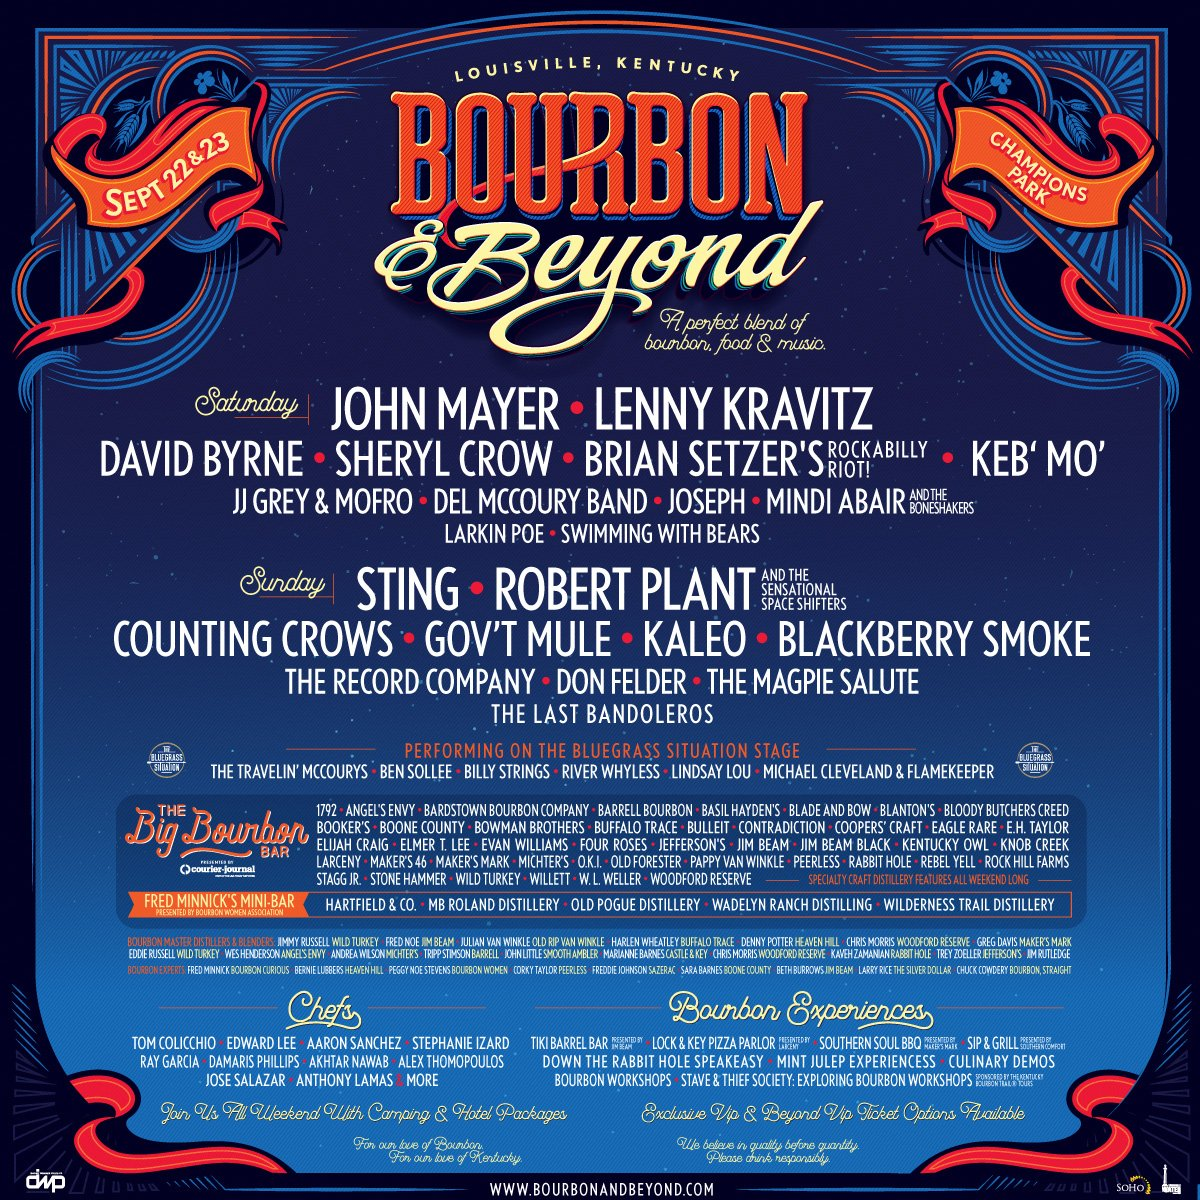 RP & the Sensational Space Shifters will perform at @BourbonNBeyond in Louisville, KY, on September 23. Tickets on sale Friday: goo.gl/FqePWx #BourbonAndBeyond